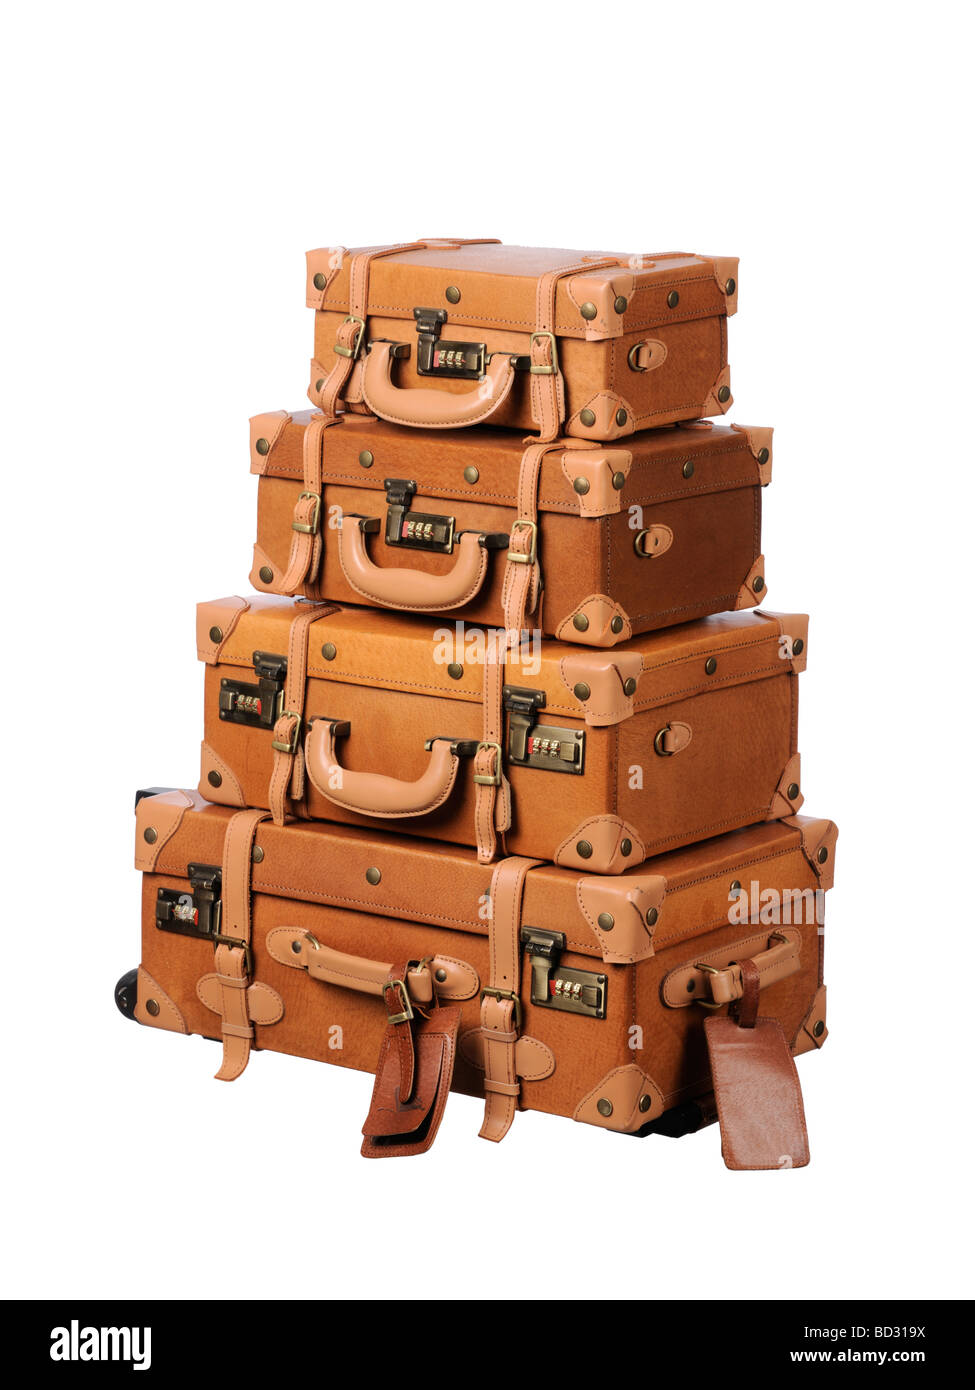 Travel bags - Stock Image